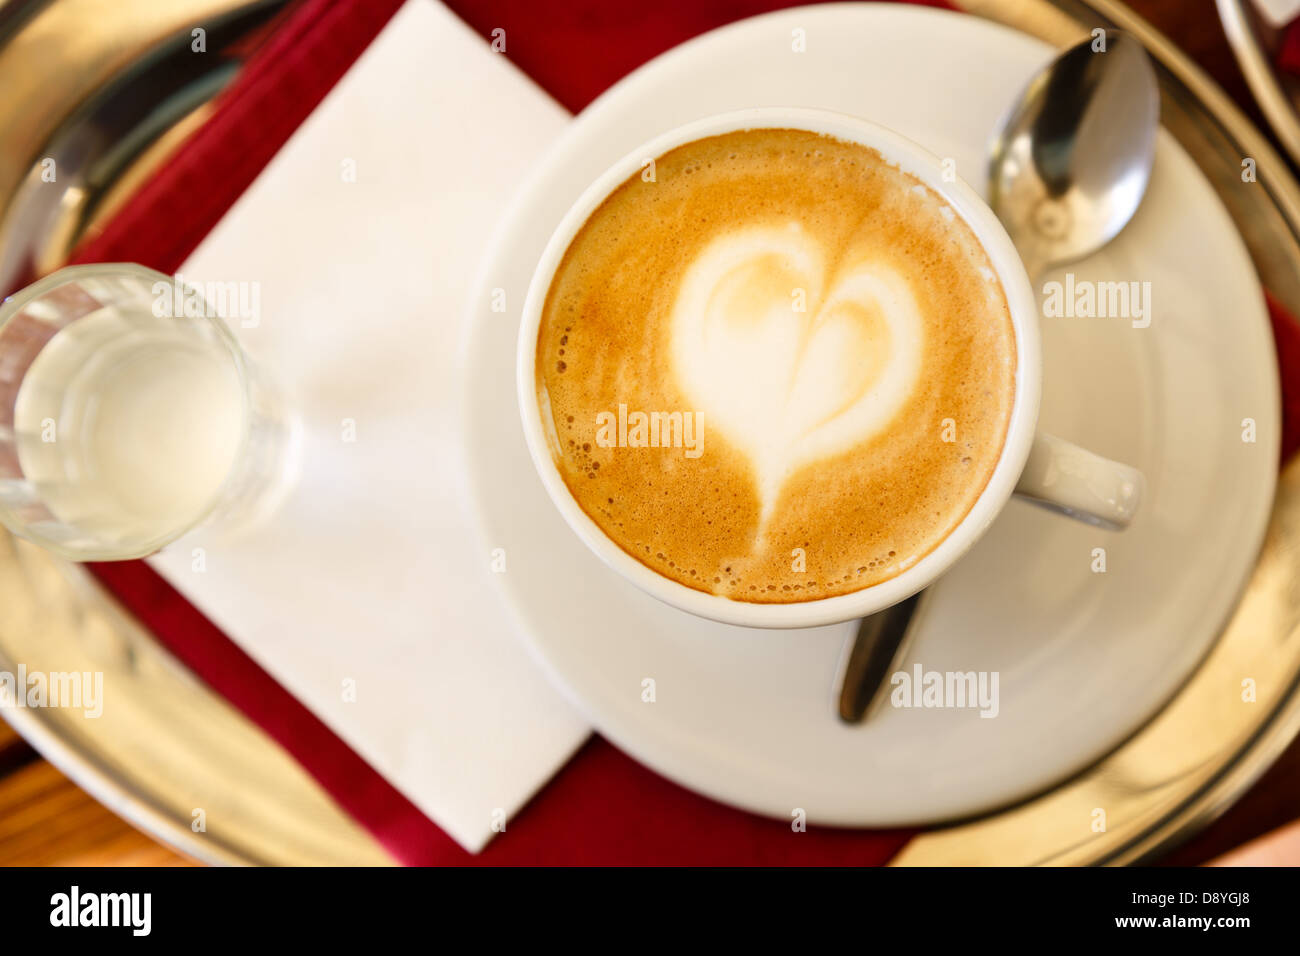 Coffee espresso with coffee art decorated heart in froth - Stock Image